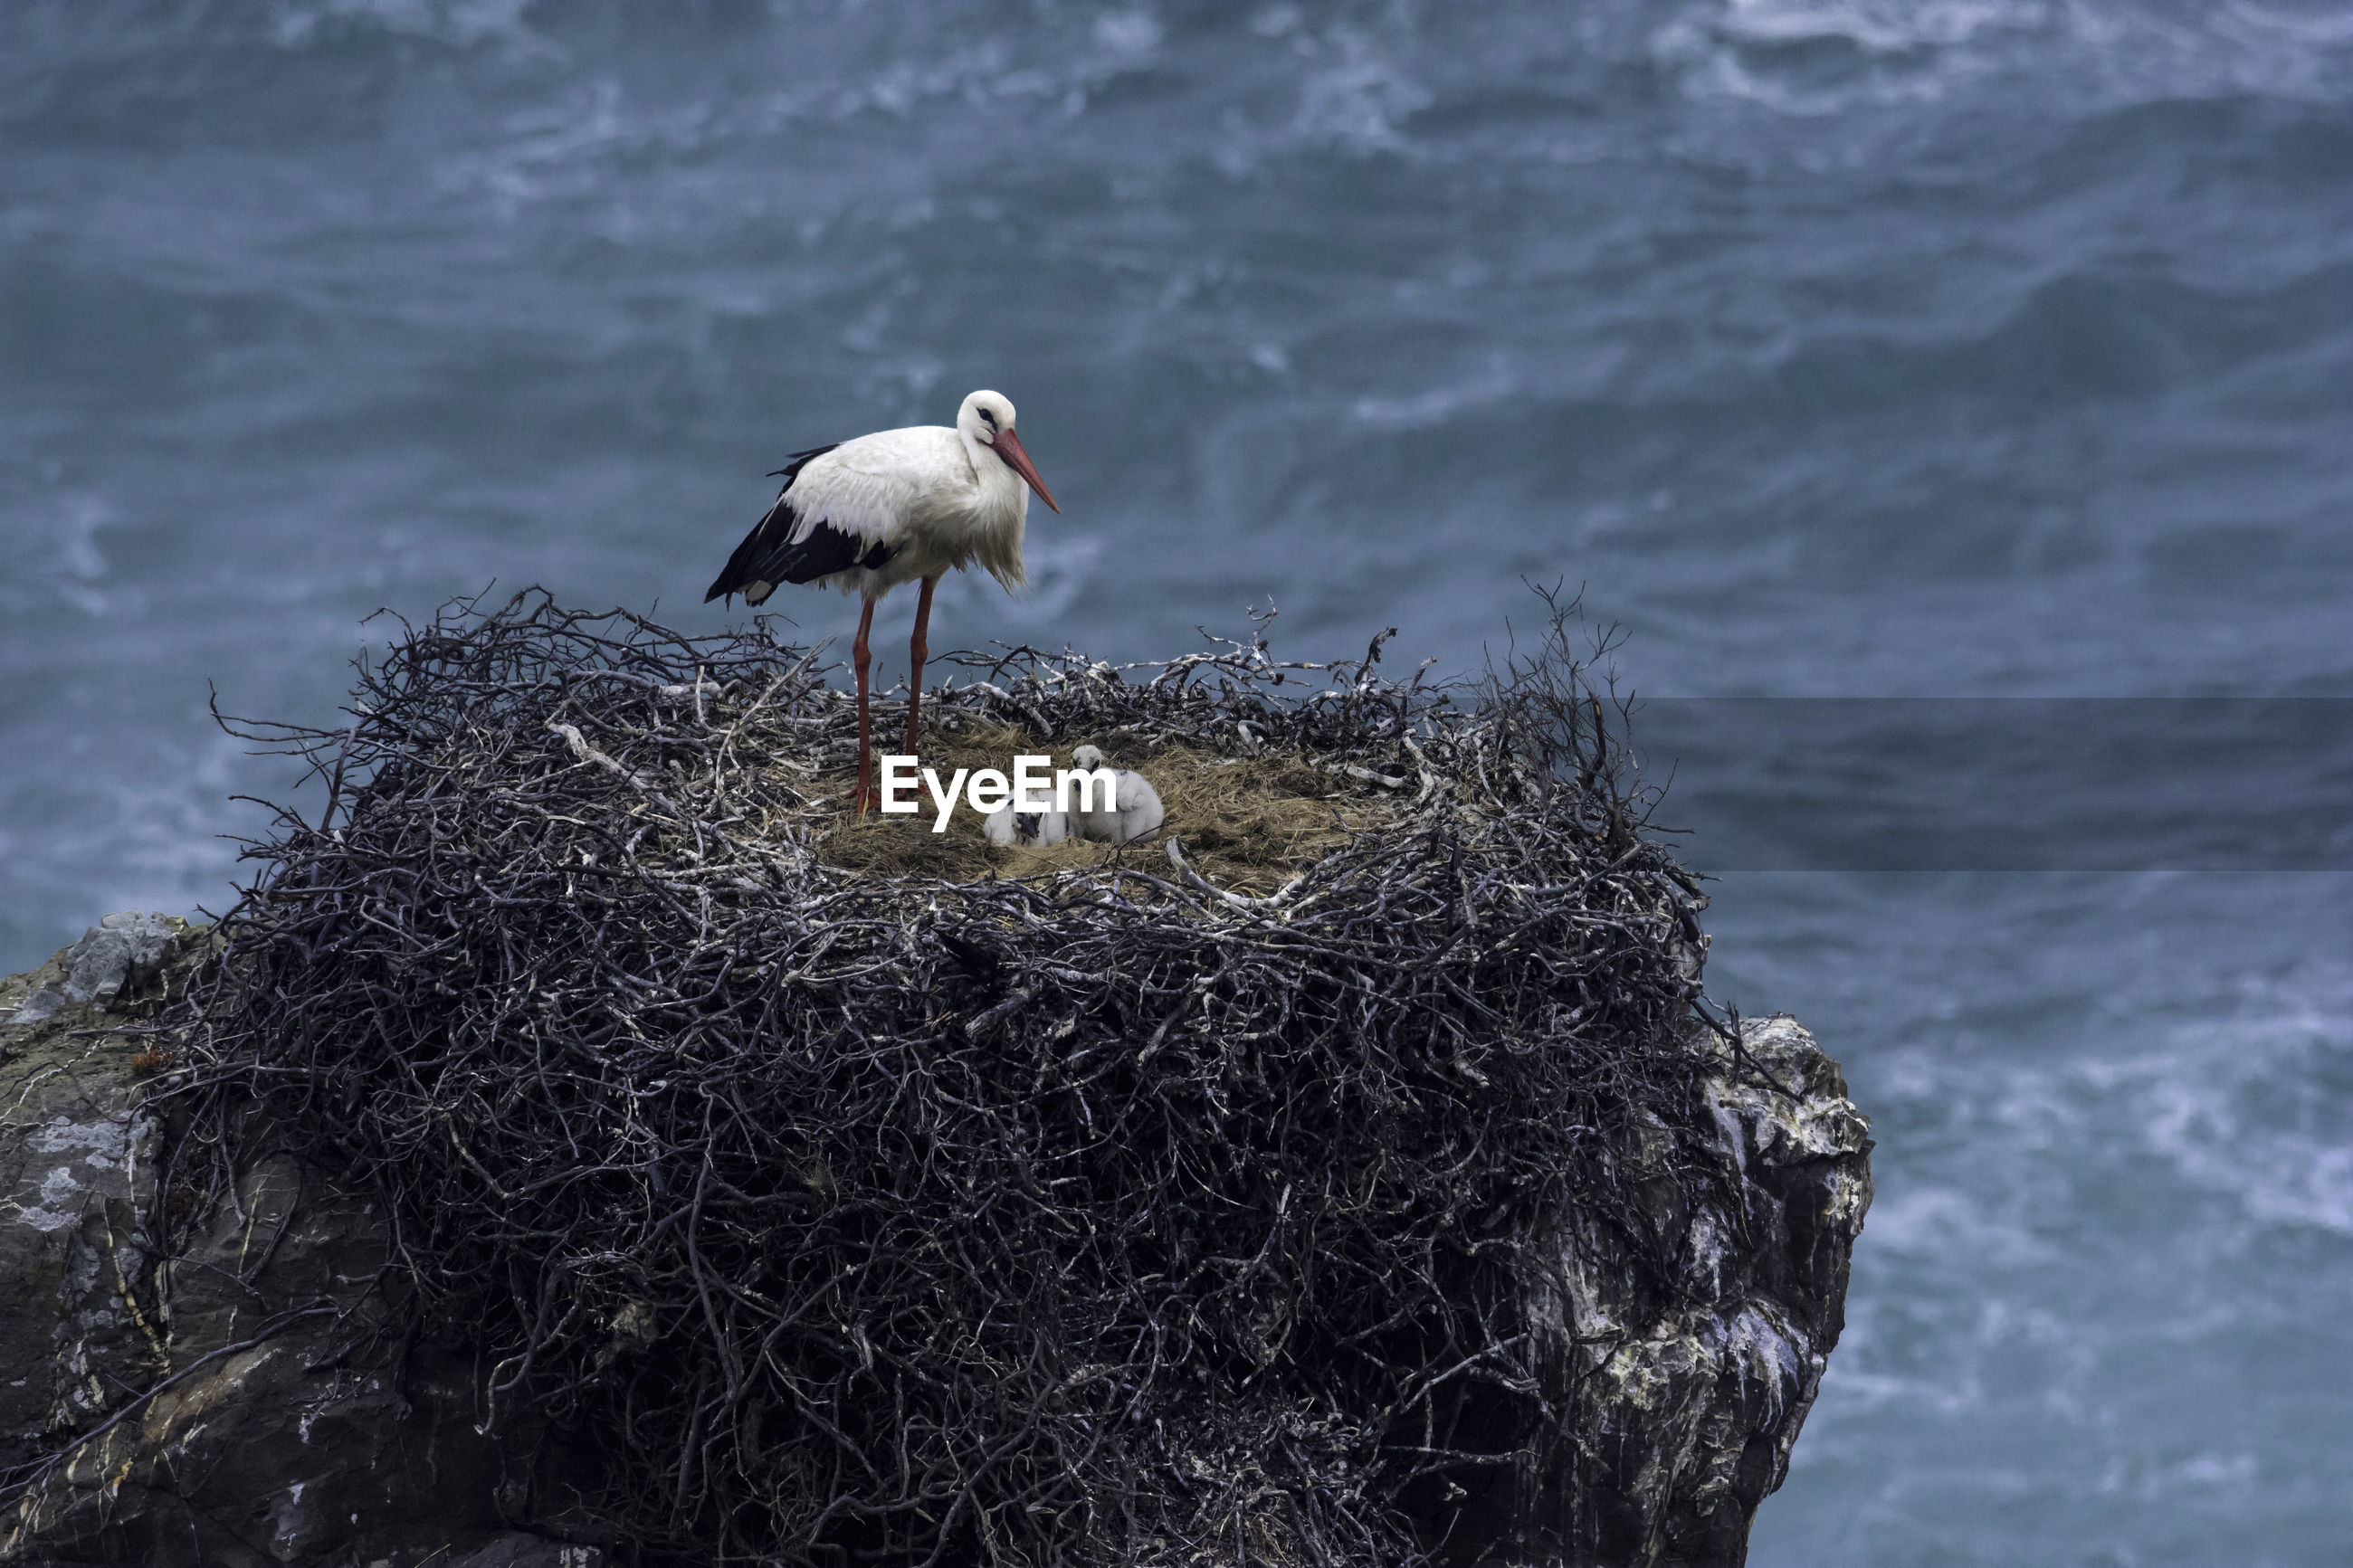 Stork with young bird perching on nest by sea